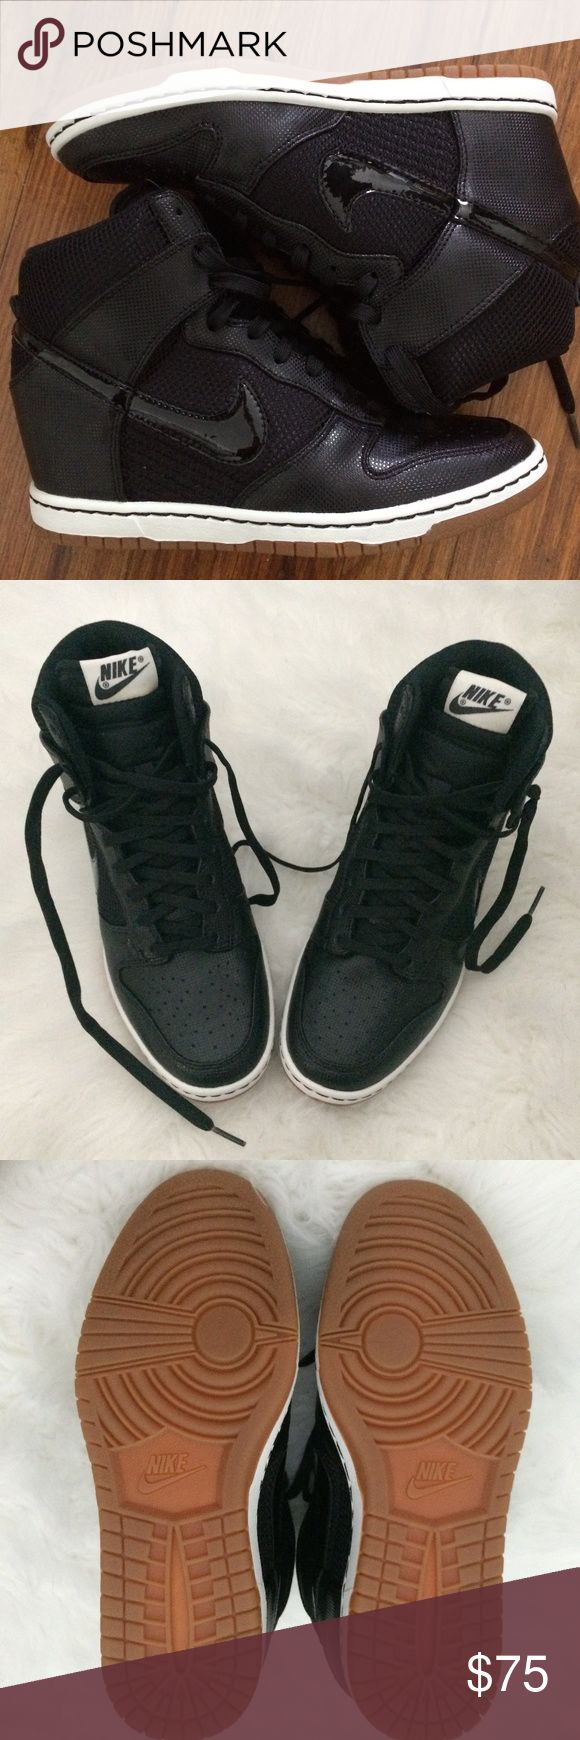 NEW ~ Nike Dunk Sky Hi Wedge Sneaker (Size 8.5) NEW ~ Nike Dunk Sky High Mesh Black Wedge Trainers in US Women's Size 8.5. Hidden heel wedge and gum sole.  Never worn, only to try on. I typically wear a US Size 8.5 (depending on the brand), but are pretty much true to size. Good street wear, comfy, and fashionable.                                                                                                      Comes with original box (slightly bent due to storage).  See photos for…